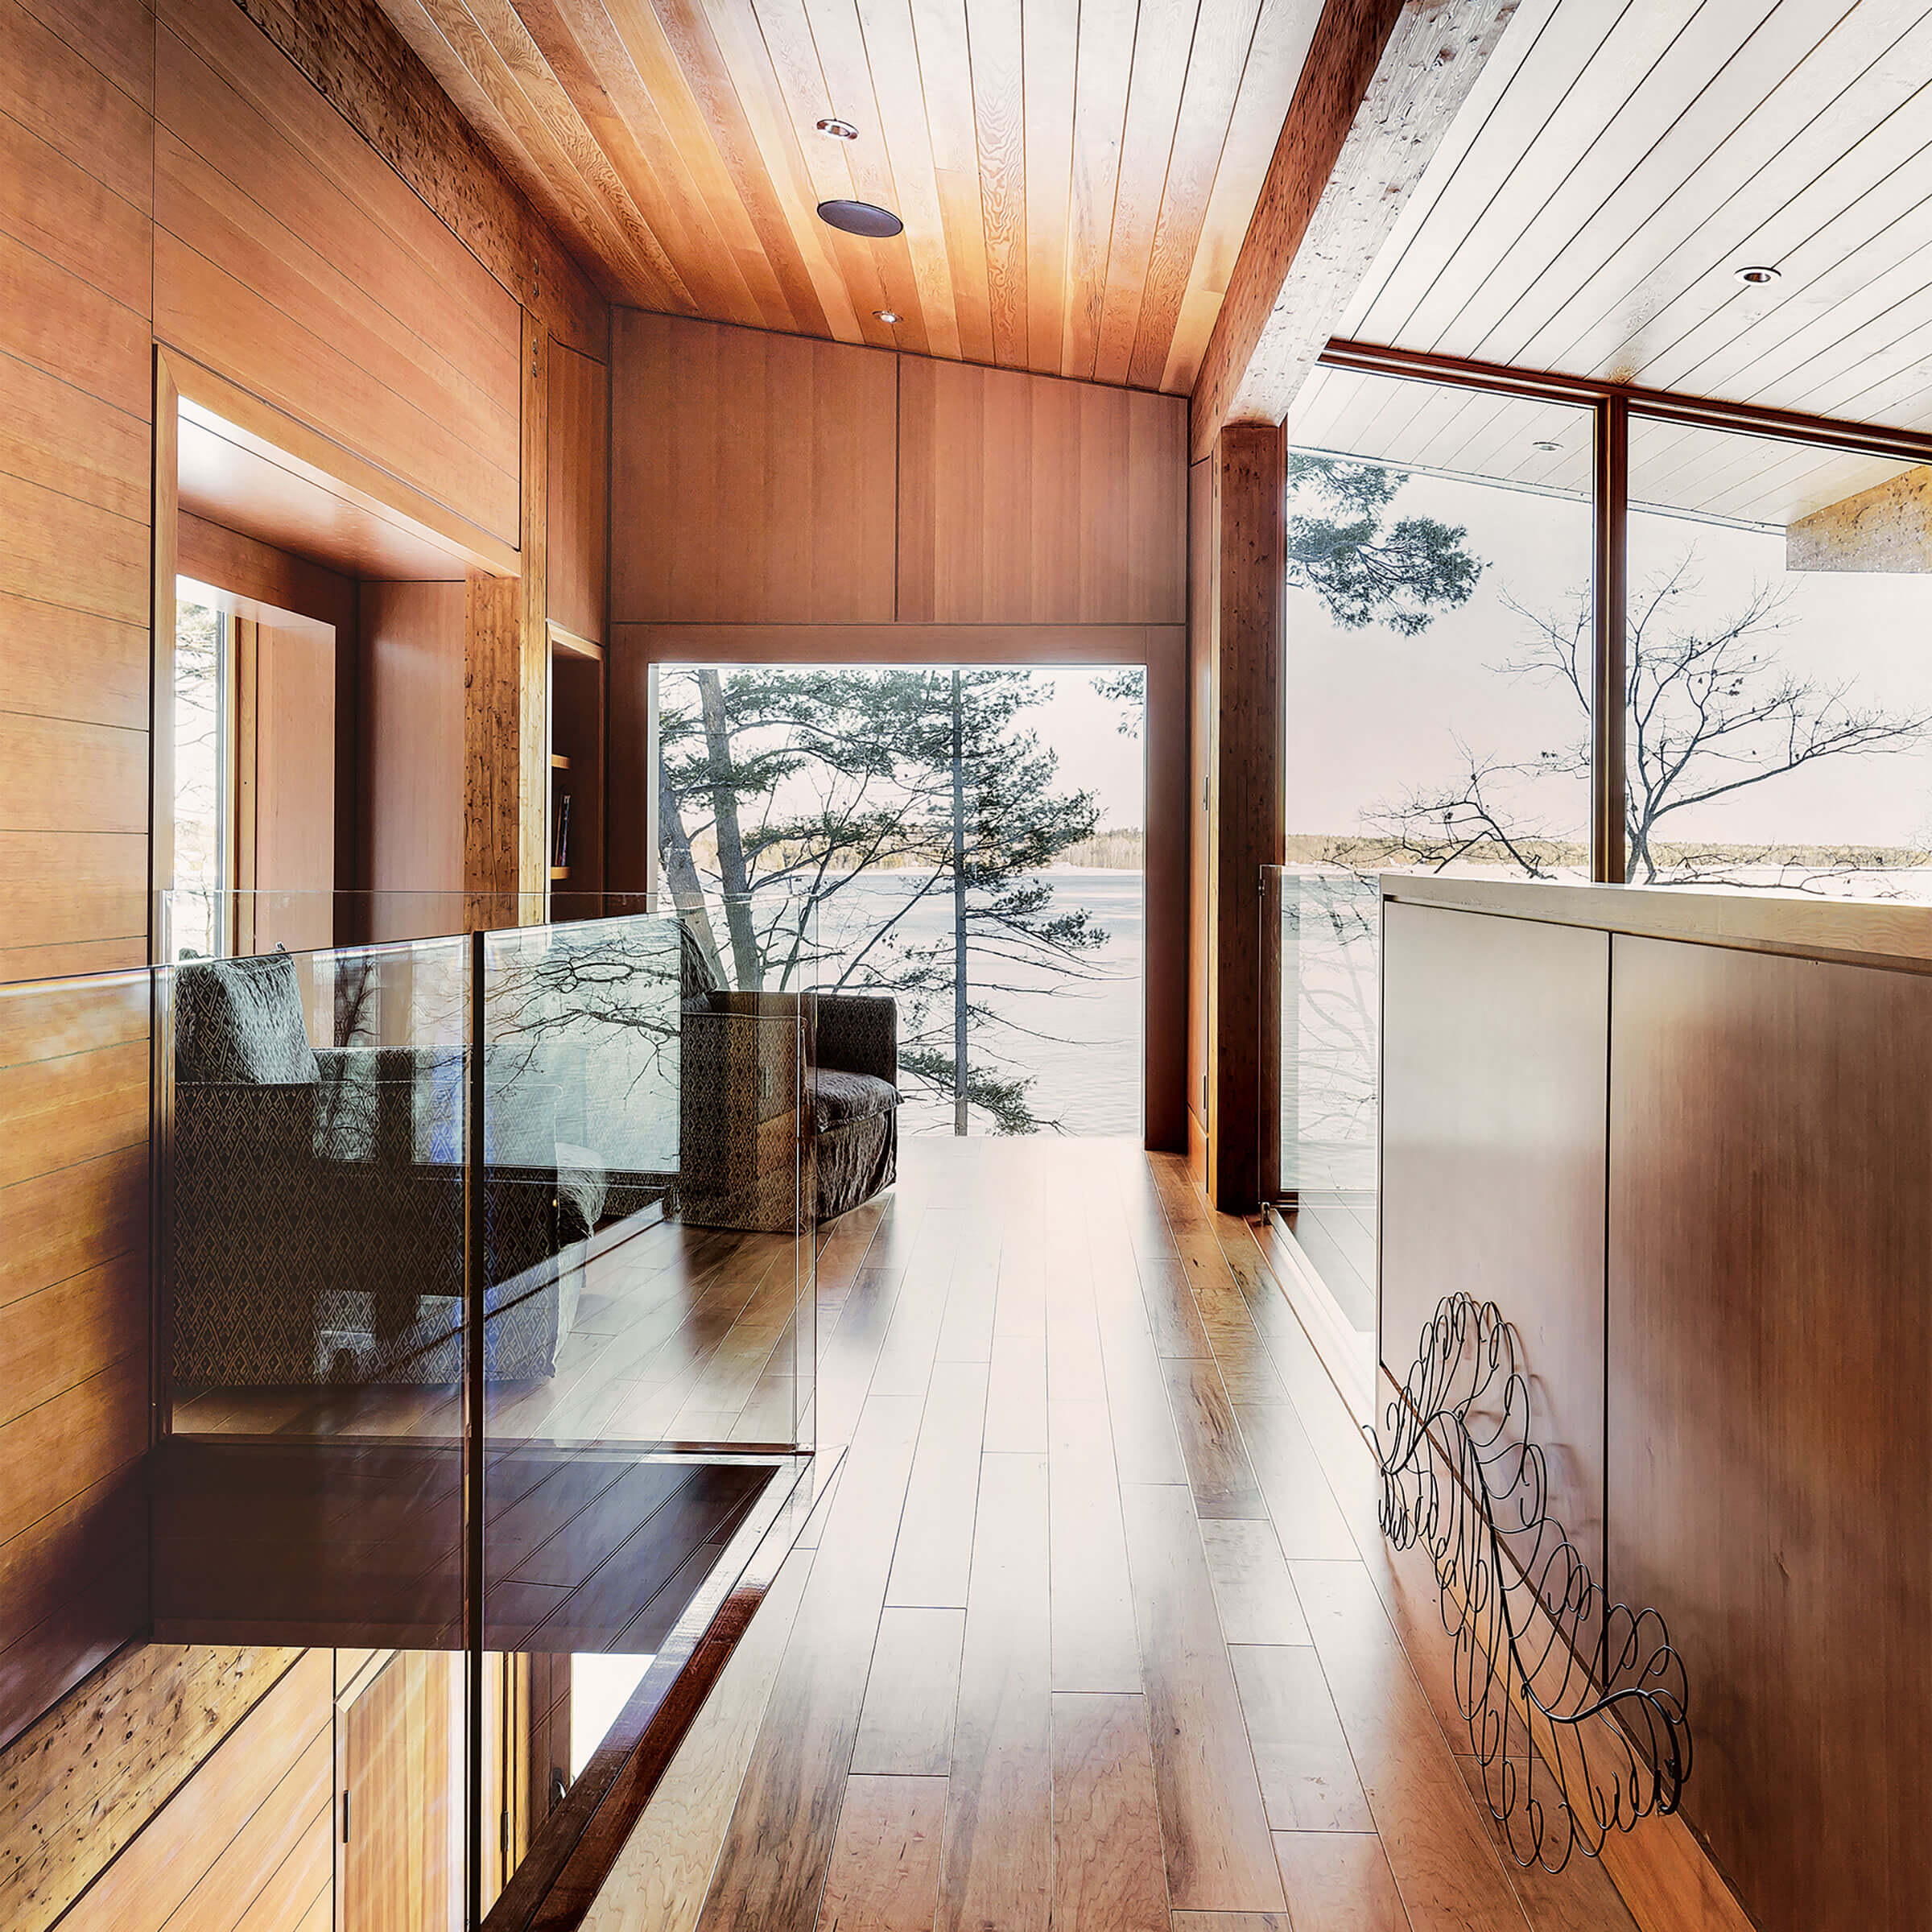 Interior View Of House With Signature Ultimate Specialty Shapes Windows